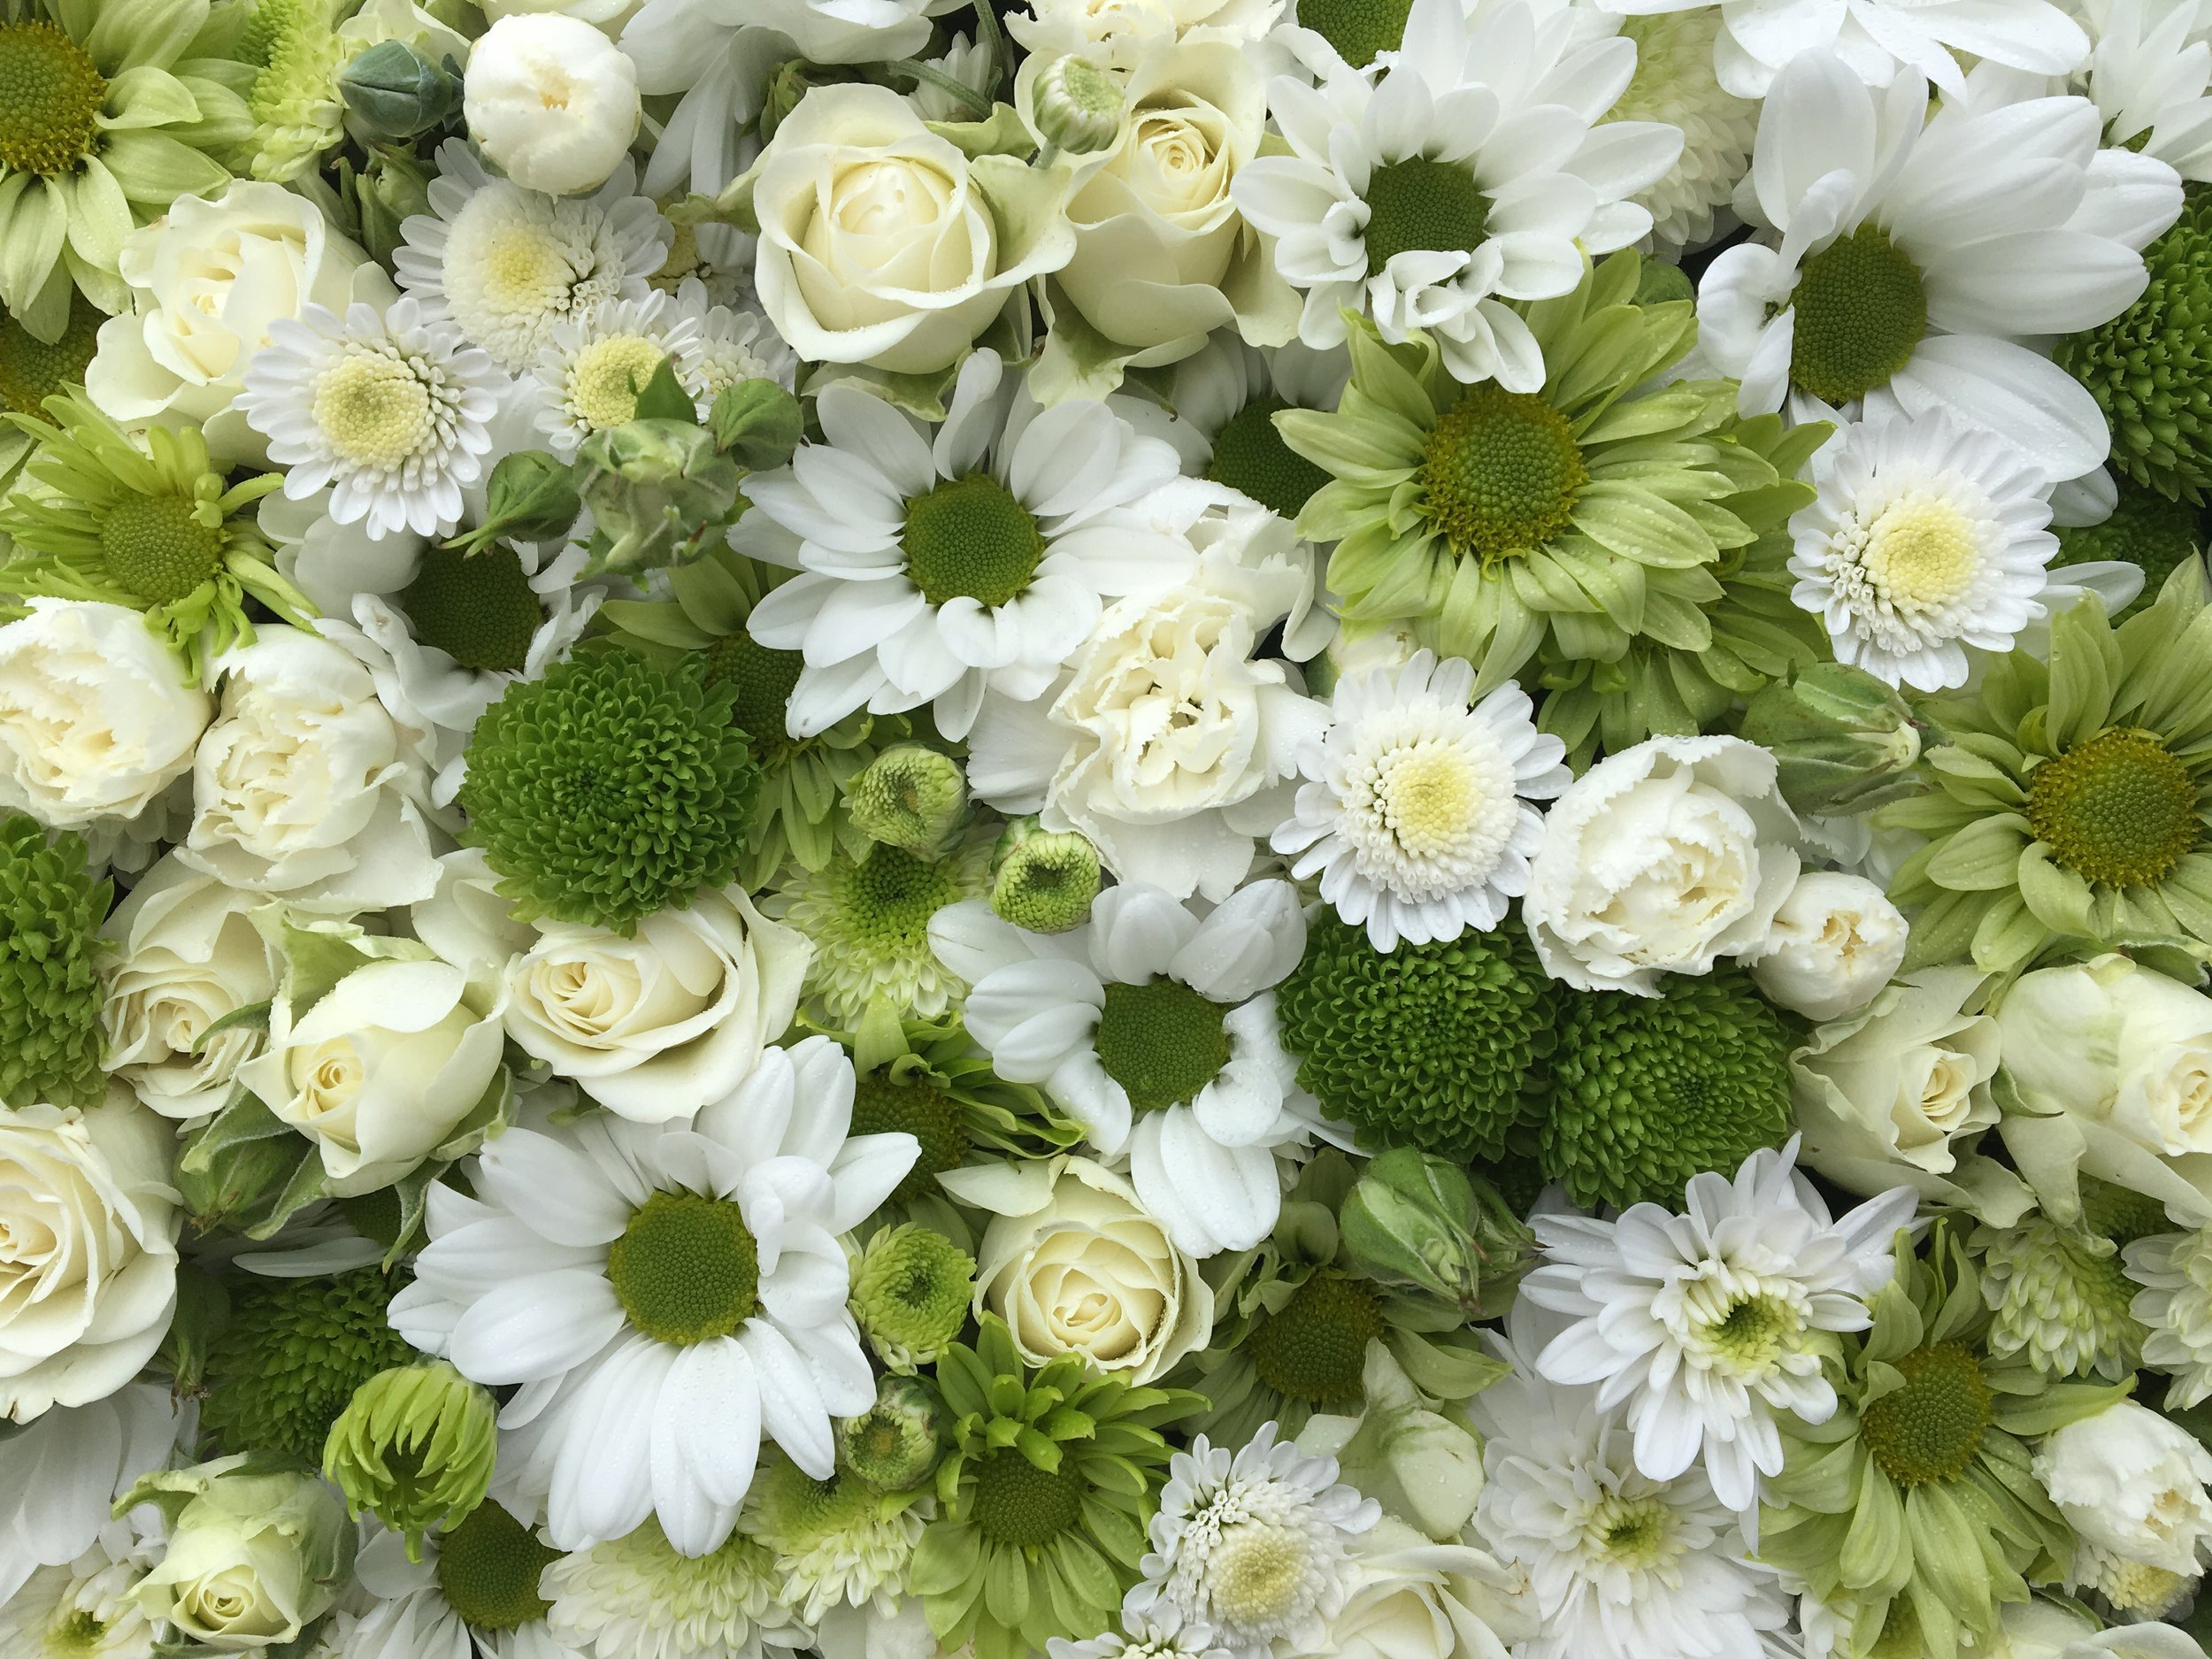 Delicious creamy white spray roses with white spray carnations and a range of chrysanthemums from little green button types to single greens and white to double whites from really tiny to big flowers. A fresh crisp colour scheme that I always think feels right as a memorial but especially appropriate for Diana.